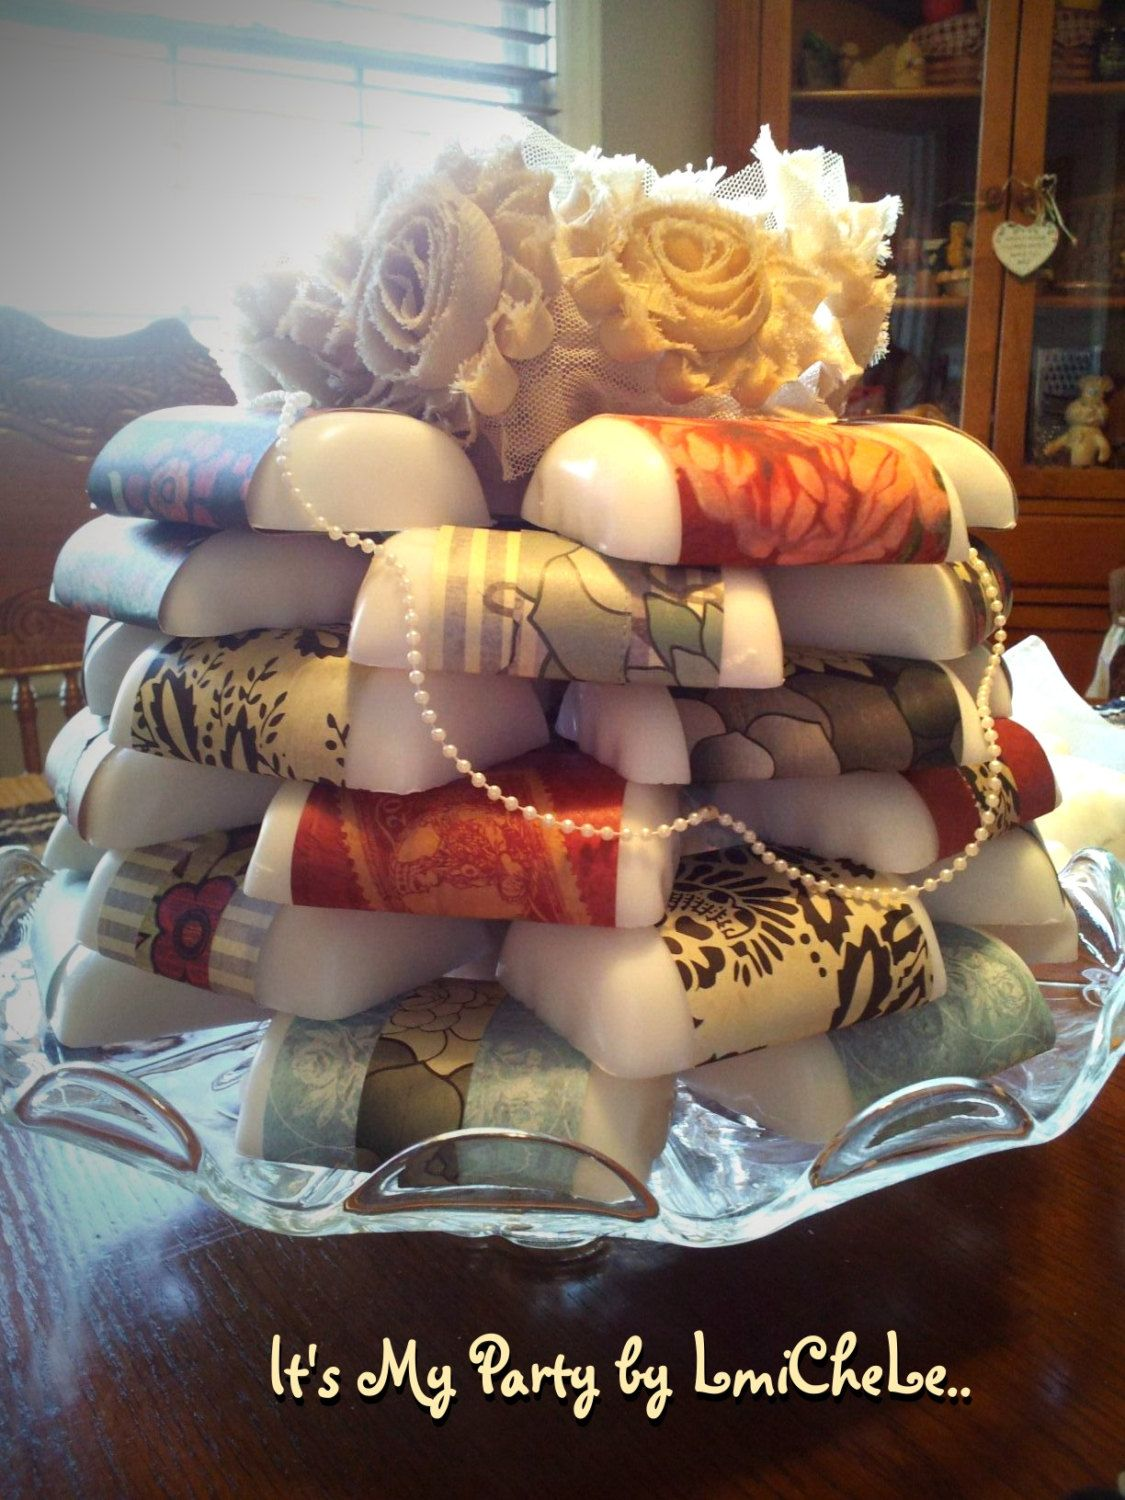 best homemade bridal shower gifts%0A Take the Cake    Dozen Handmade Bar Soap Favors with Flower Topper and  Lace Trim